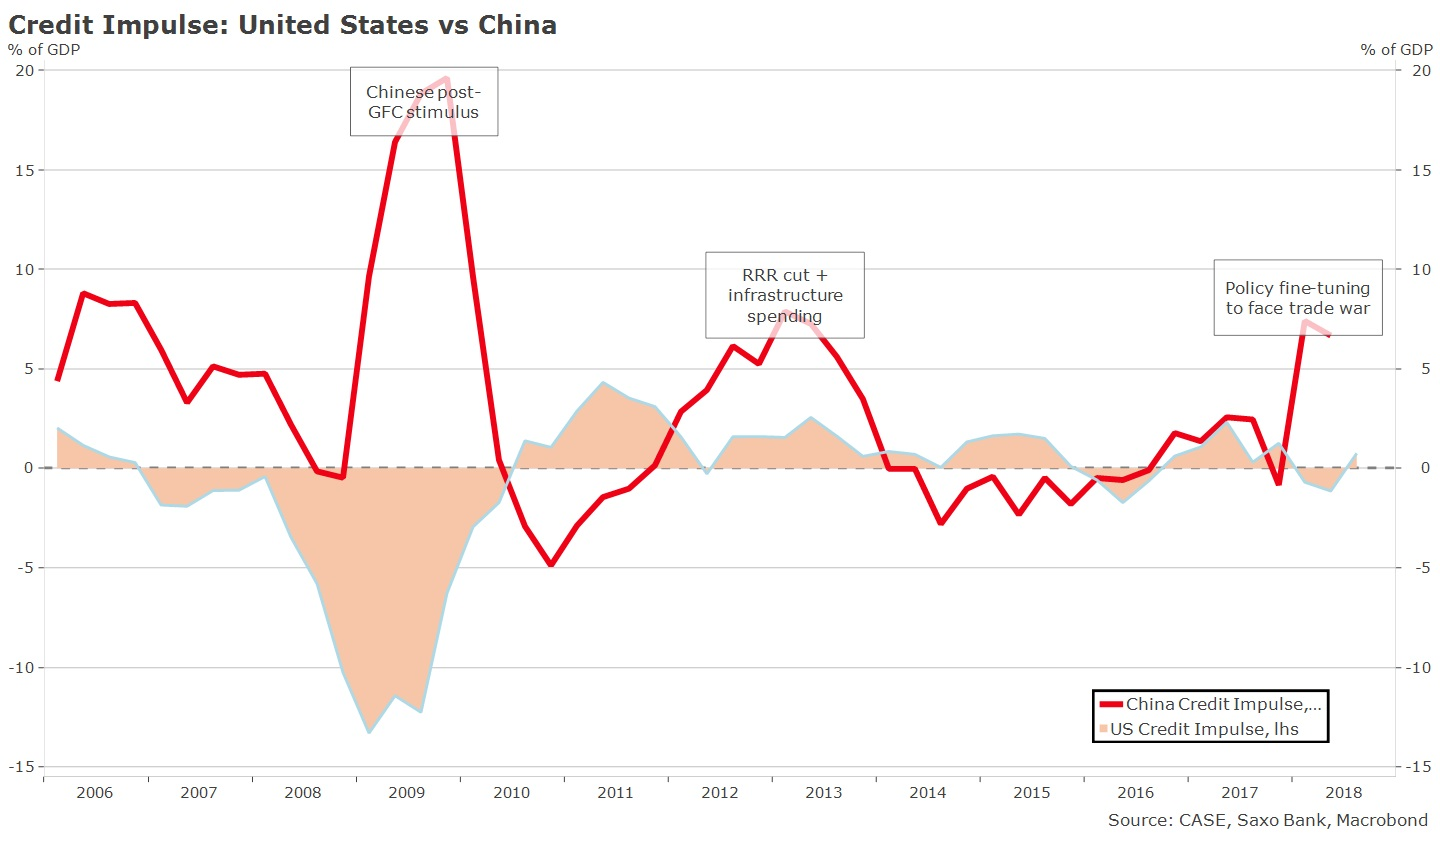 Credit Impulse US vs China